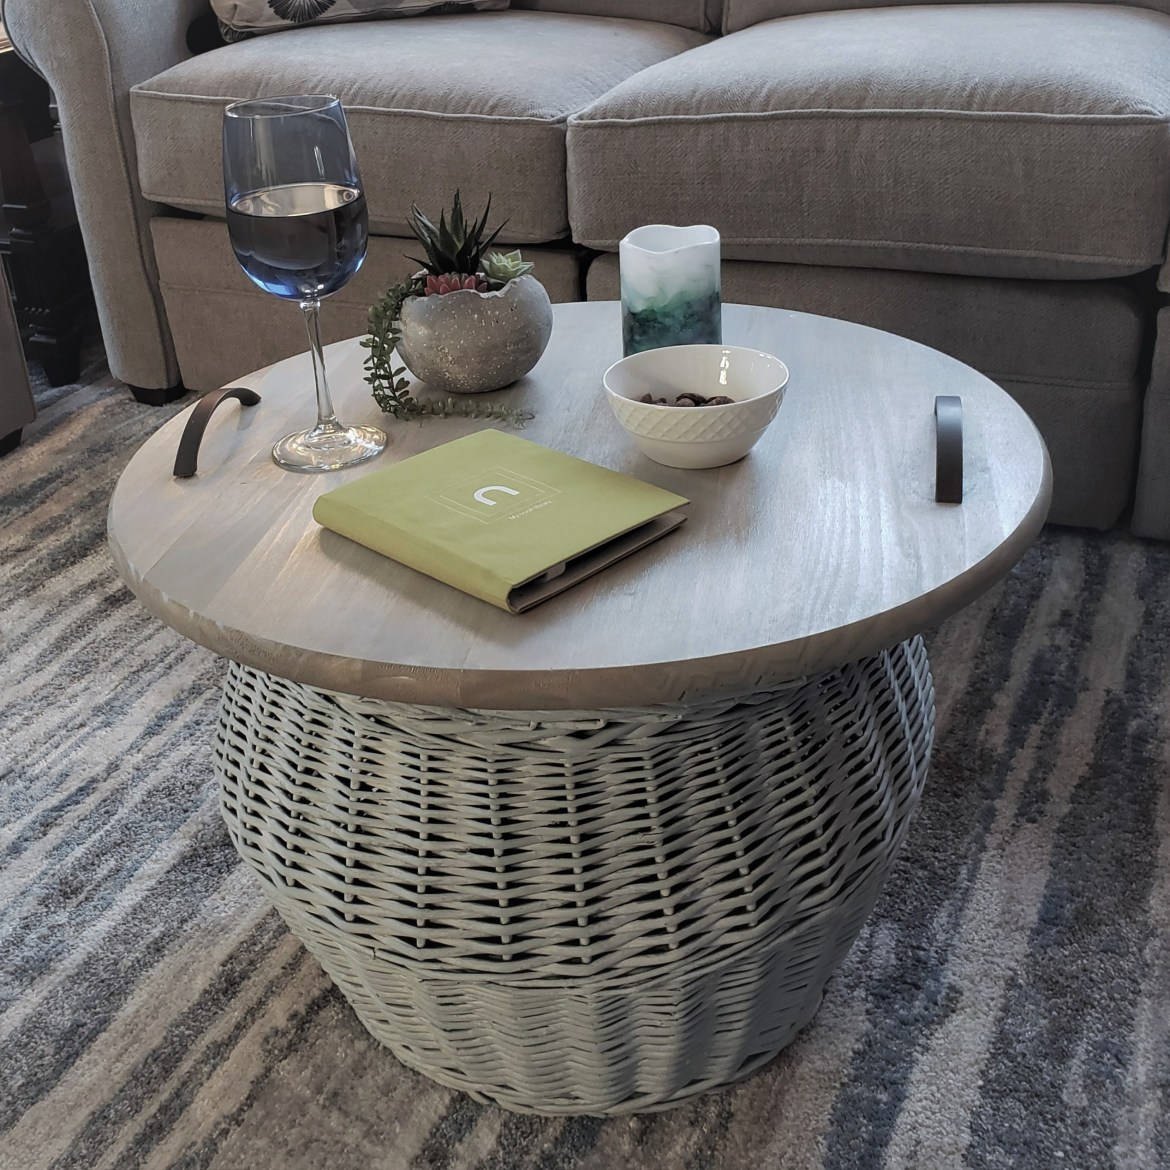 DIY Basket Coffee Table with Storage